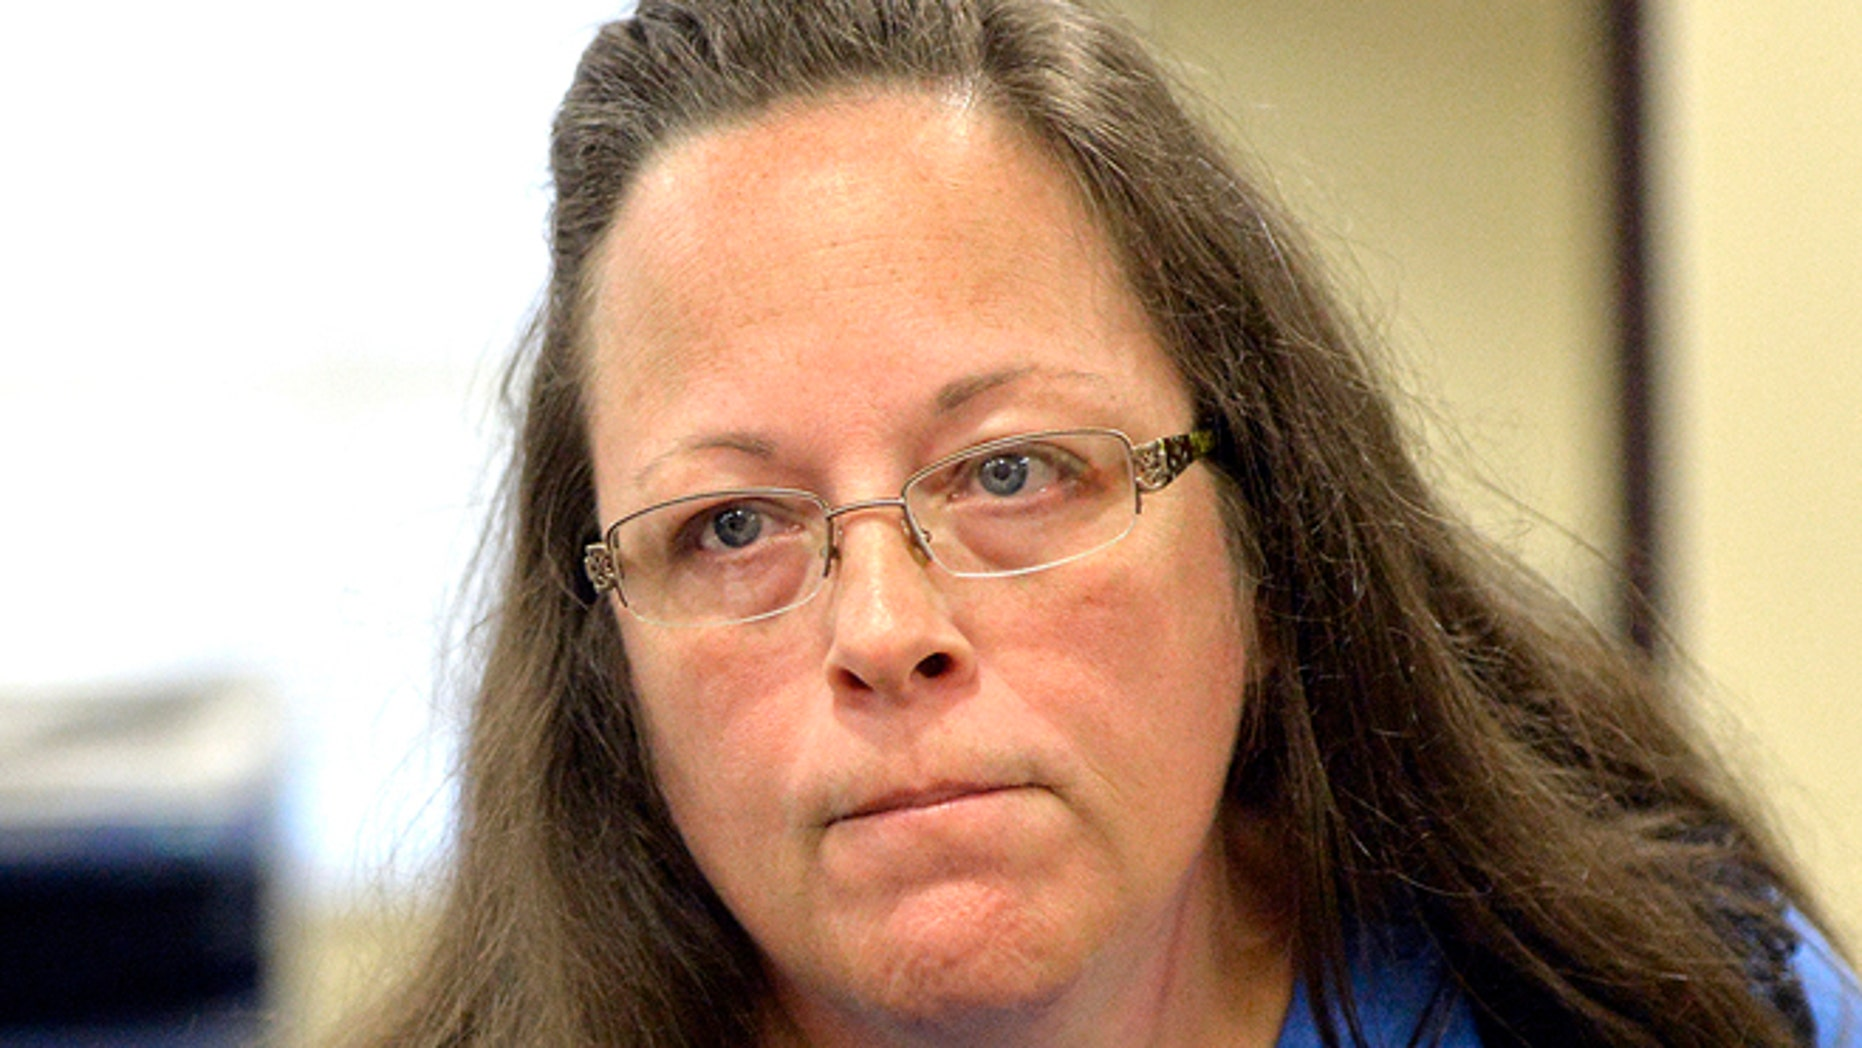 Sept. 1, 2015: Rowan County Clerk Kim Davis listens to a customer following her office's refusal to issue marriage licenses at the Rowan County Courthouse in Morehead, Ky.